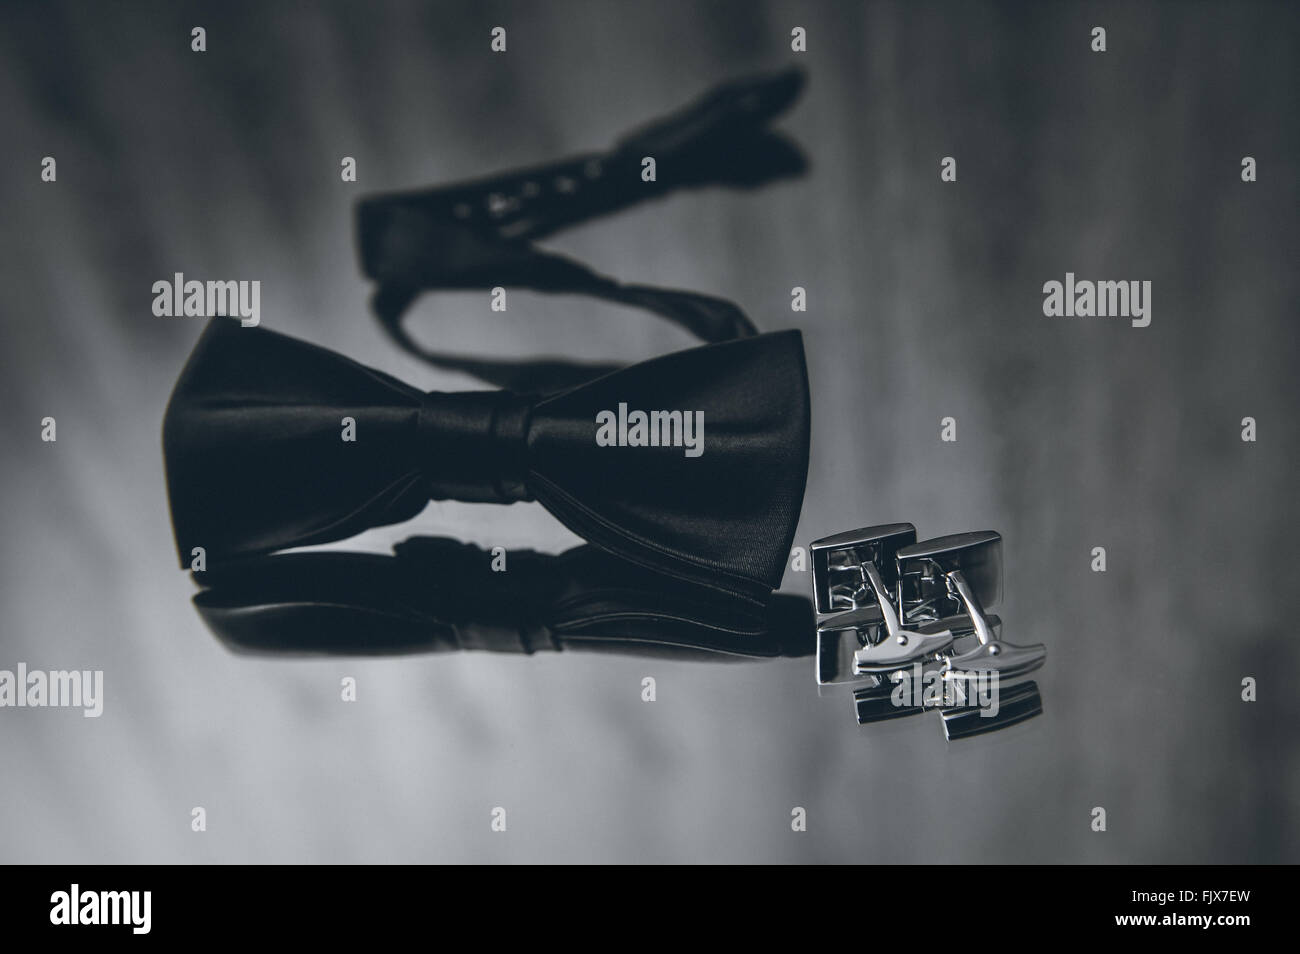 High Angle View Of Bow Tie And Cuff Link On Table - Stock Image